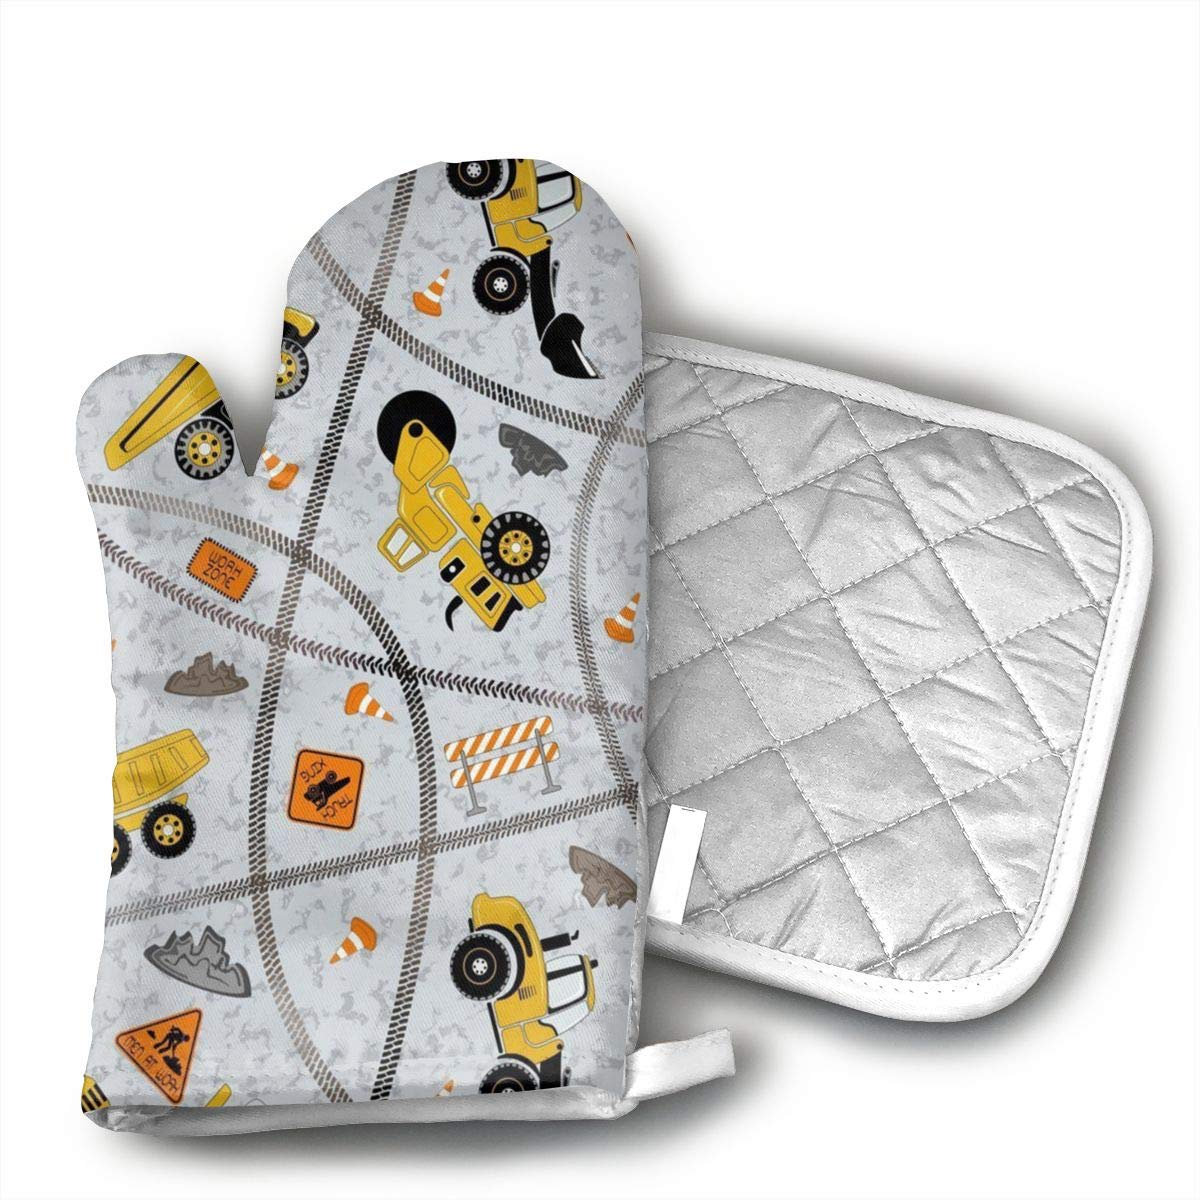 Star Blue Design Construction Trucks Zone Oven Mitts & Heat Resistant Pot Holder - with Polyester Cotton Non-Slip Grip, Best Used As Baking, Grilling, BBQ, Cooking, Kitchen Or Oven Gloves